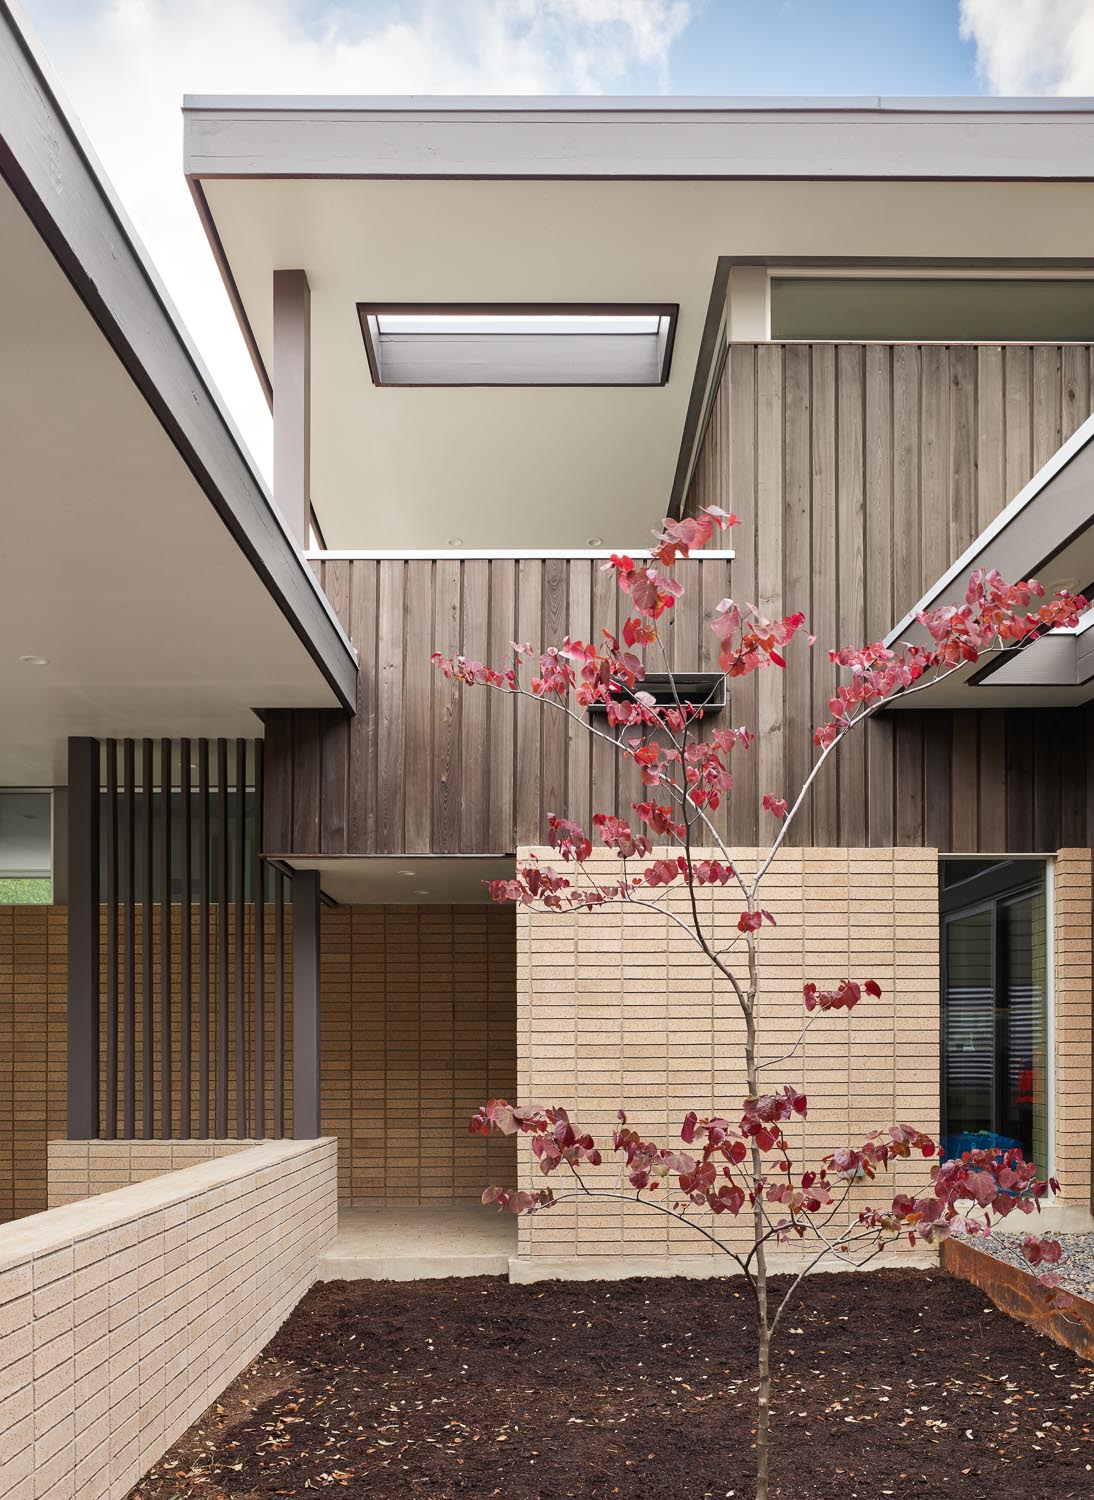 Between the carport and this mid-century modern inspired home is a small courtyard with a single tree that has been given room to grow overtime.